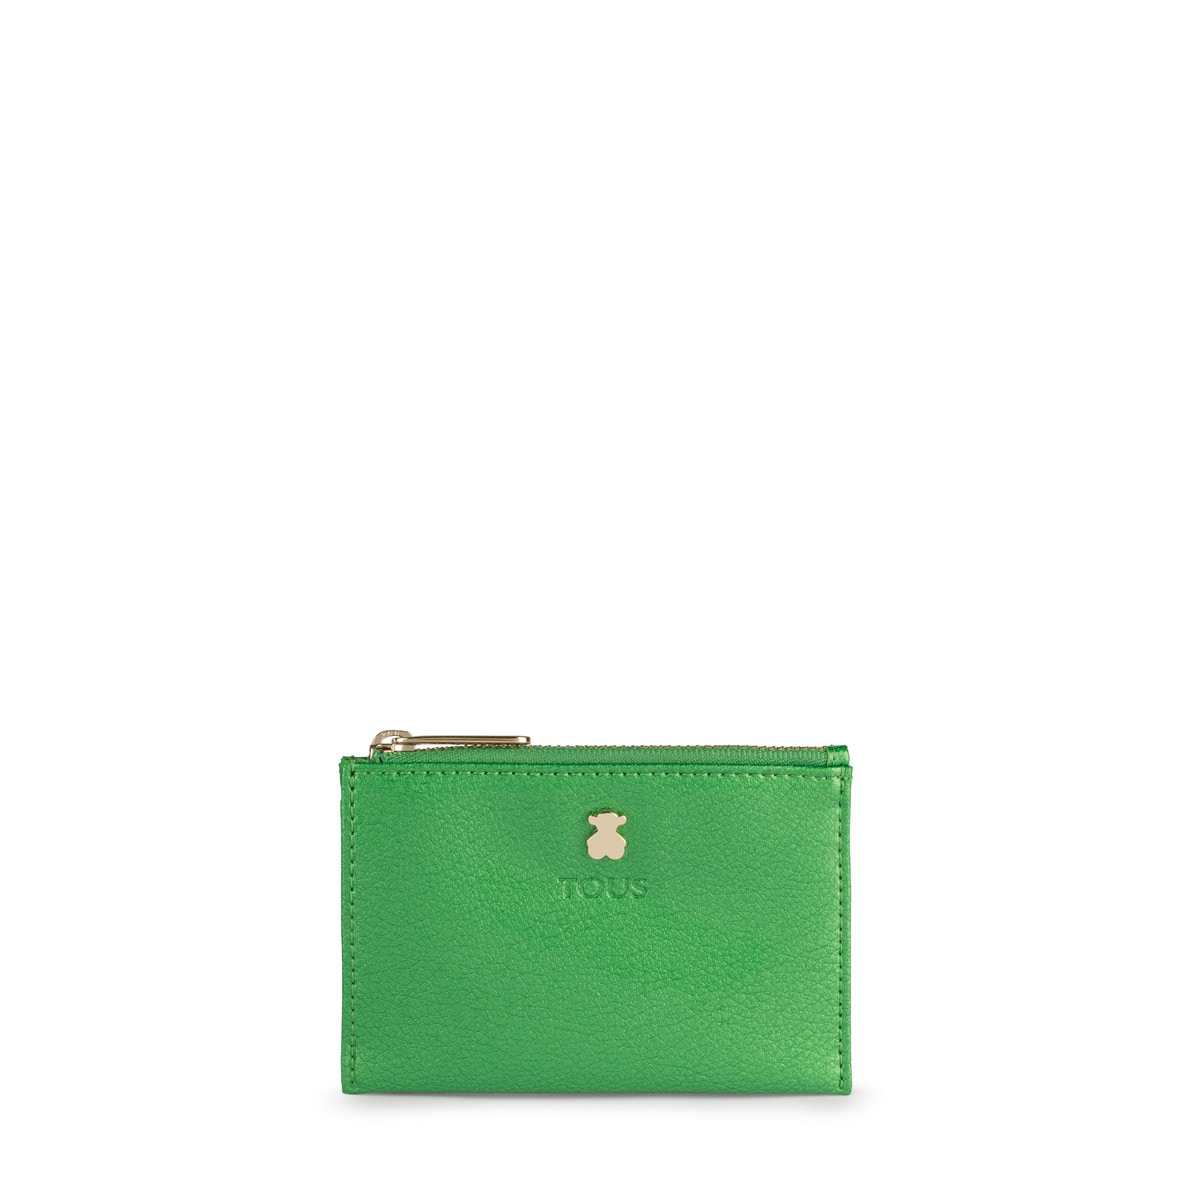 Green Dorp Change purse and Cardholder